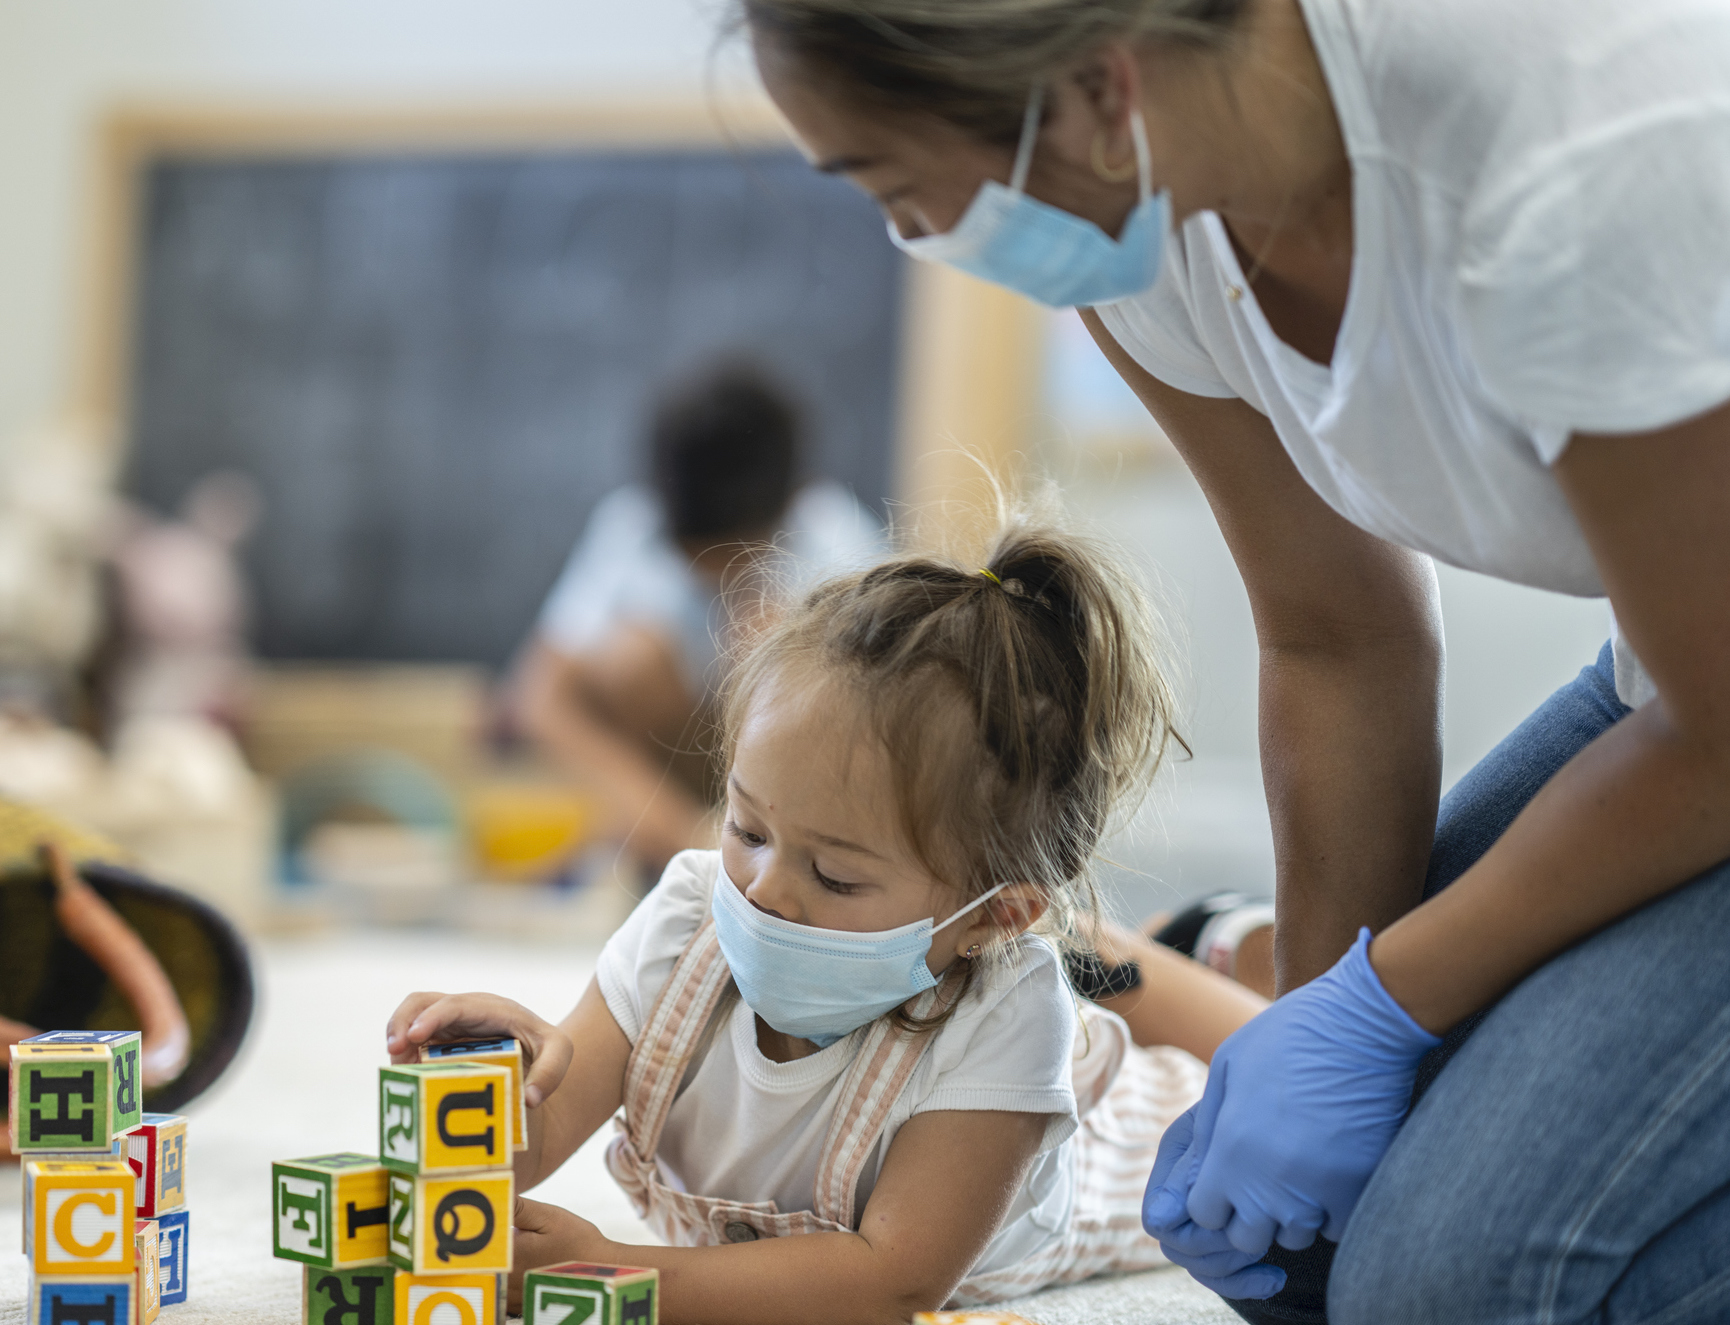 Young girl in mask plays with blocks while masked and gloved woman watches